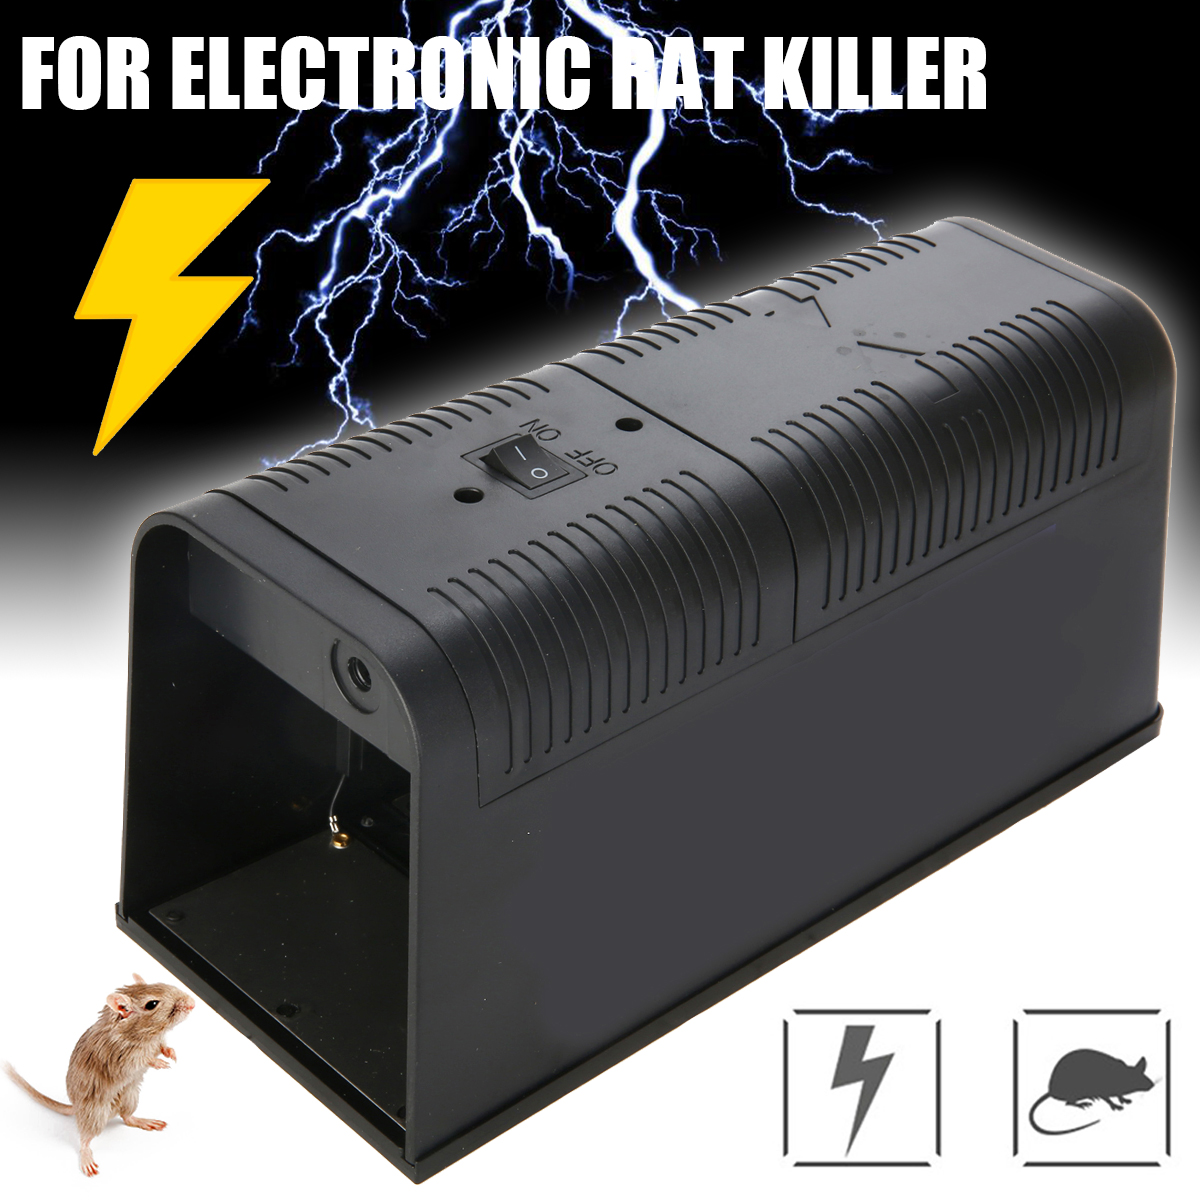 Mayitr Electronic Mouse Trap Control Rat Killer Electric Rodent Pest Mice Assassin Traps Garden Supplies Pest Control